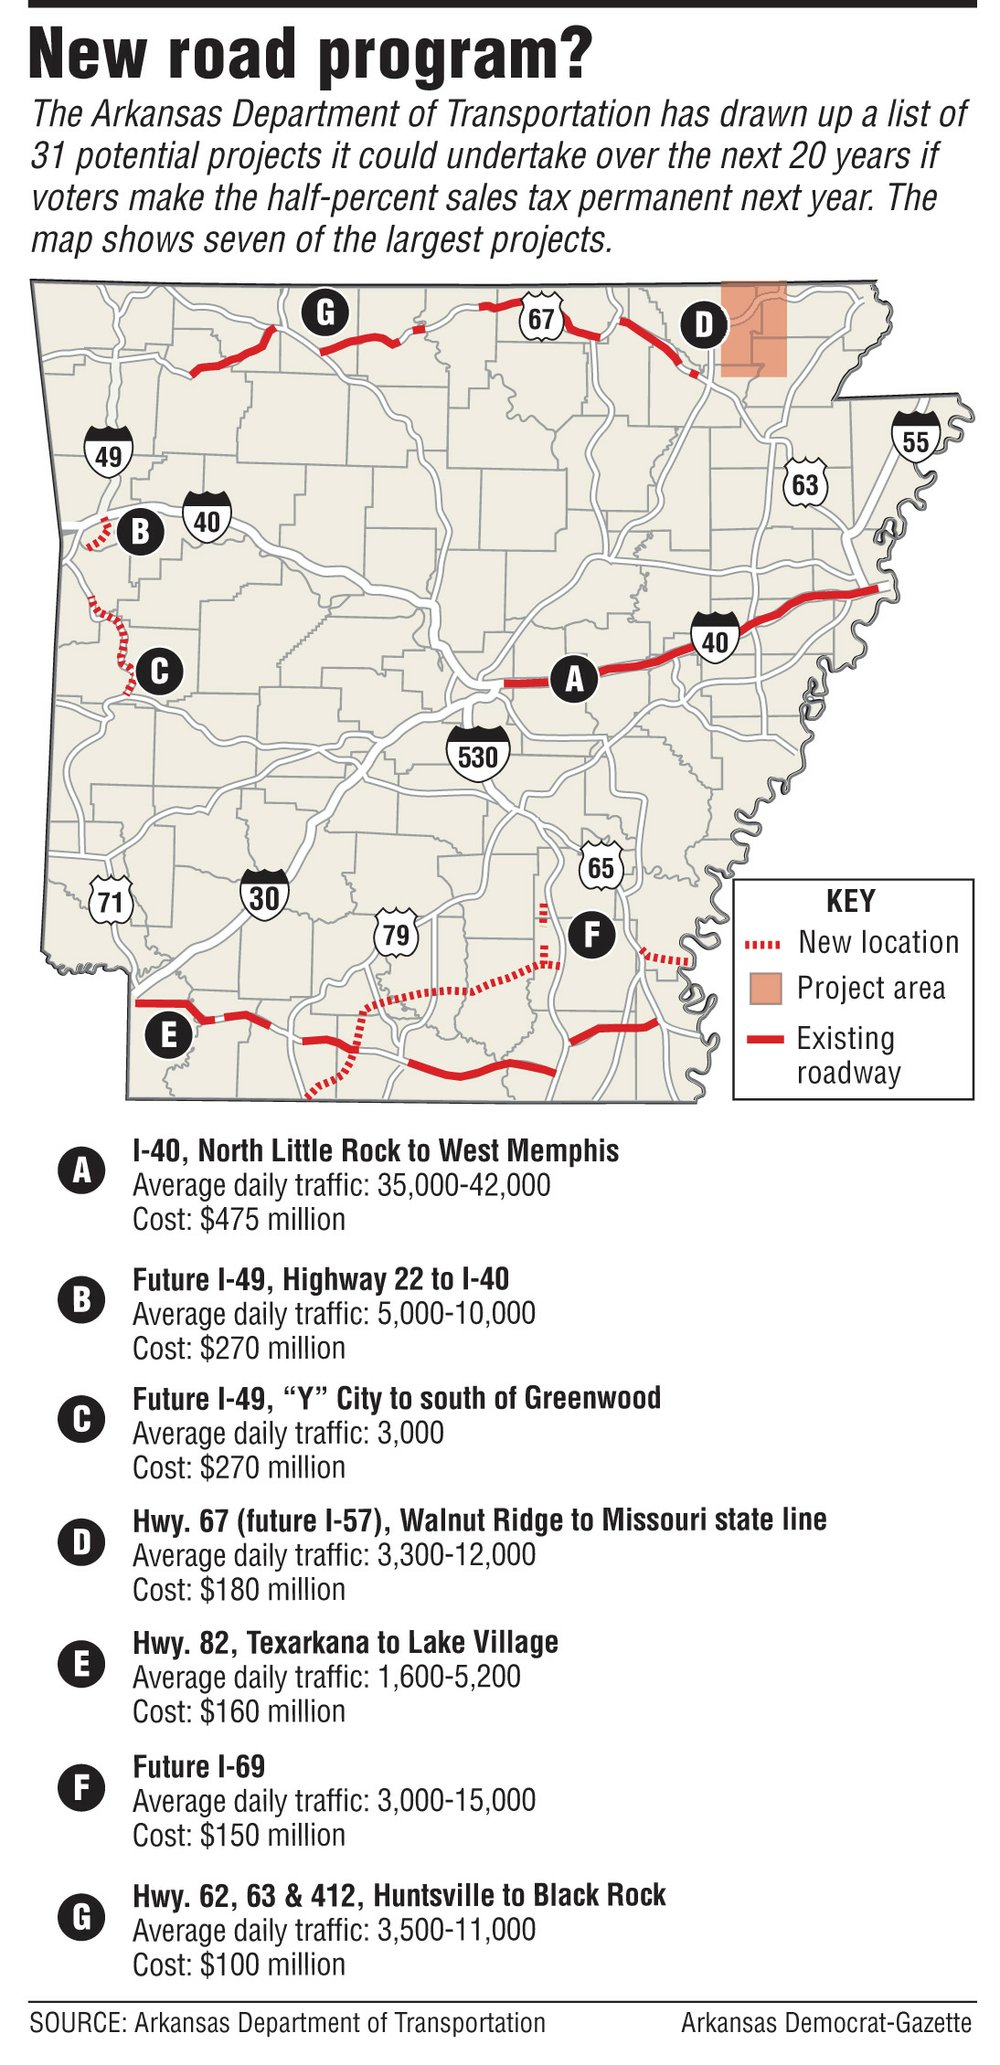 A map showing potential projects for the Arkansas Department of Transportation.